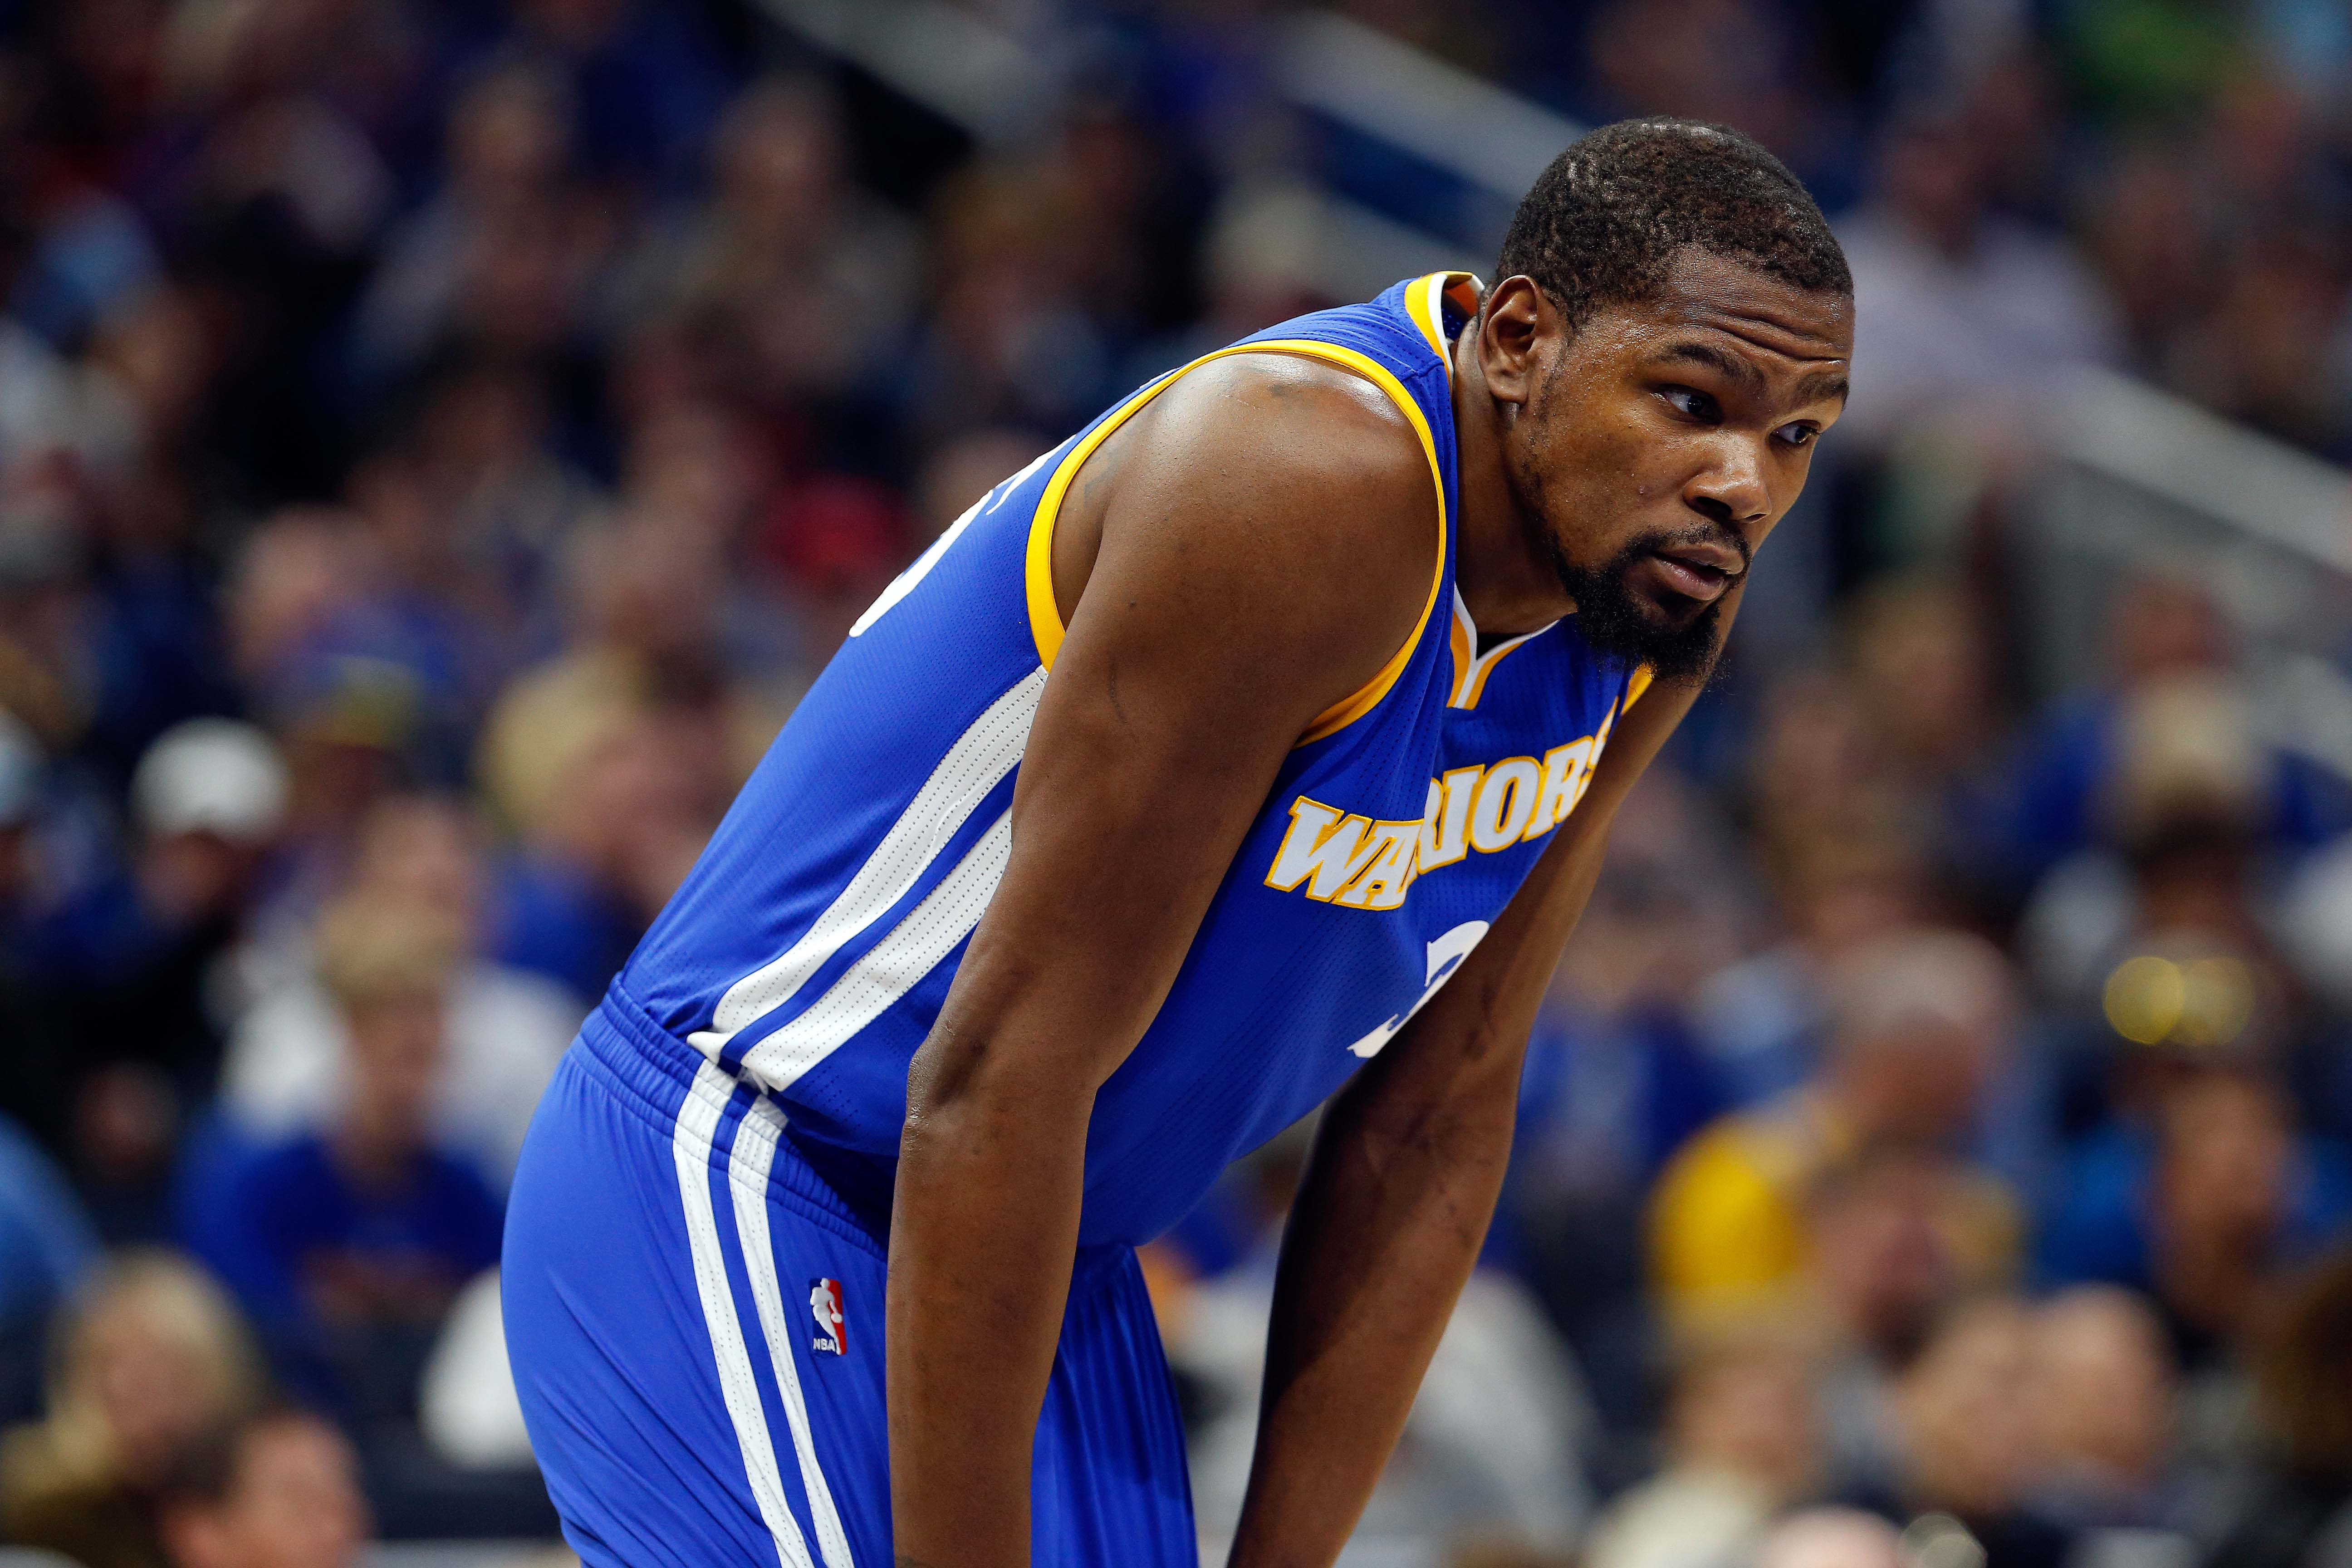 Kevin Wayne Durant born September 29 1988 is an American professional basketball player for the Golden State Warriors of the National Basketball Association NBA